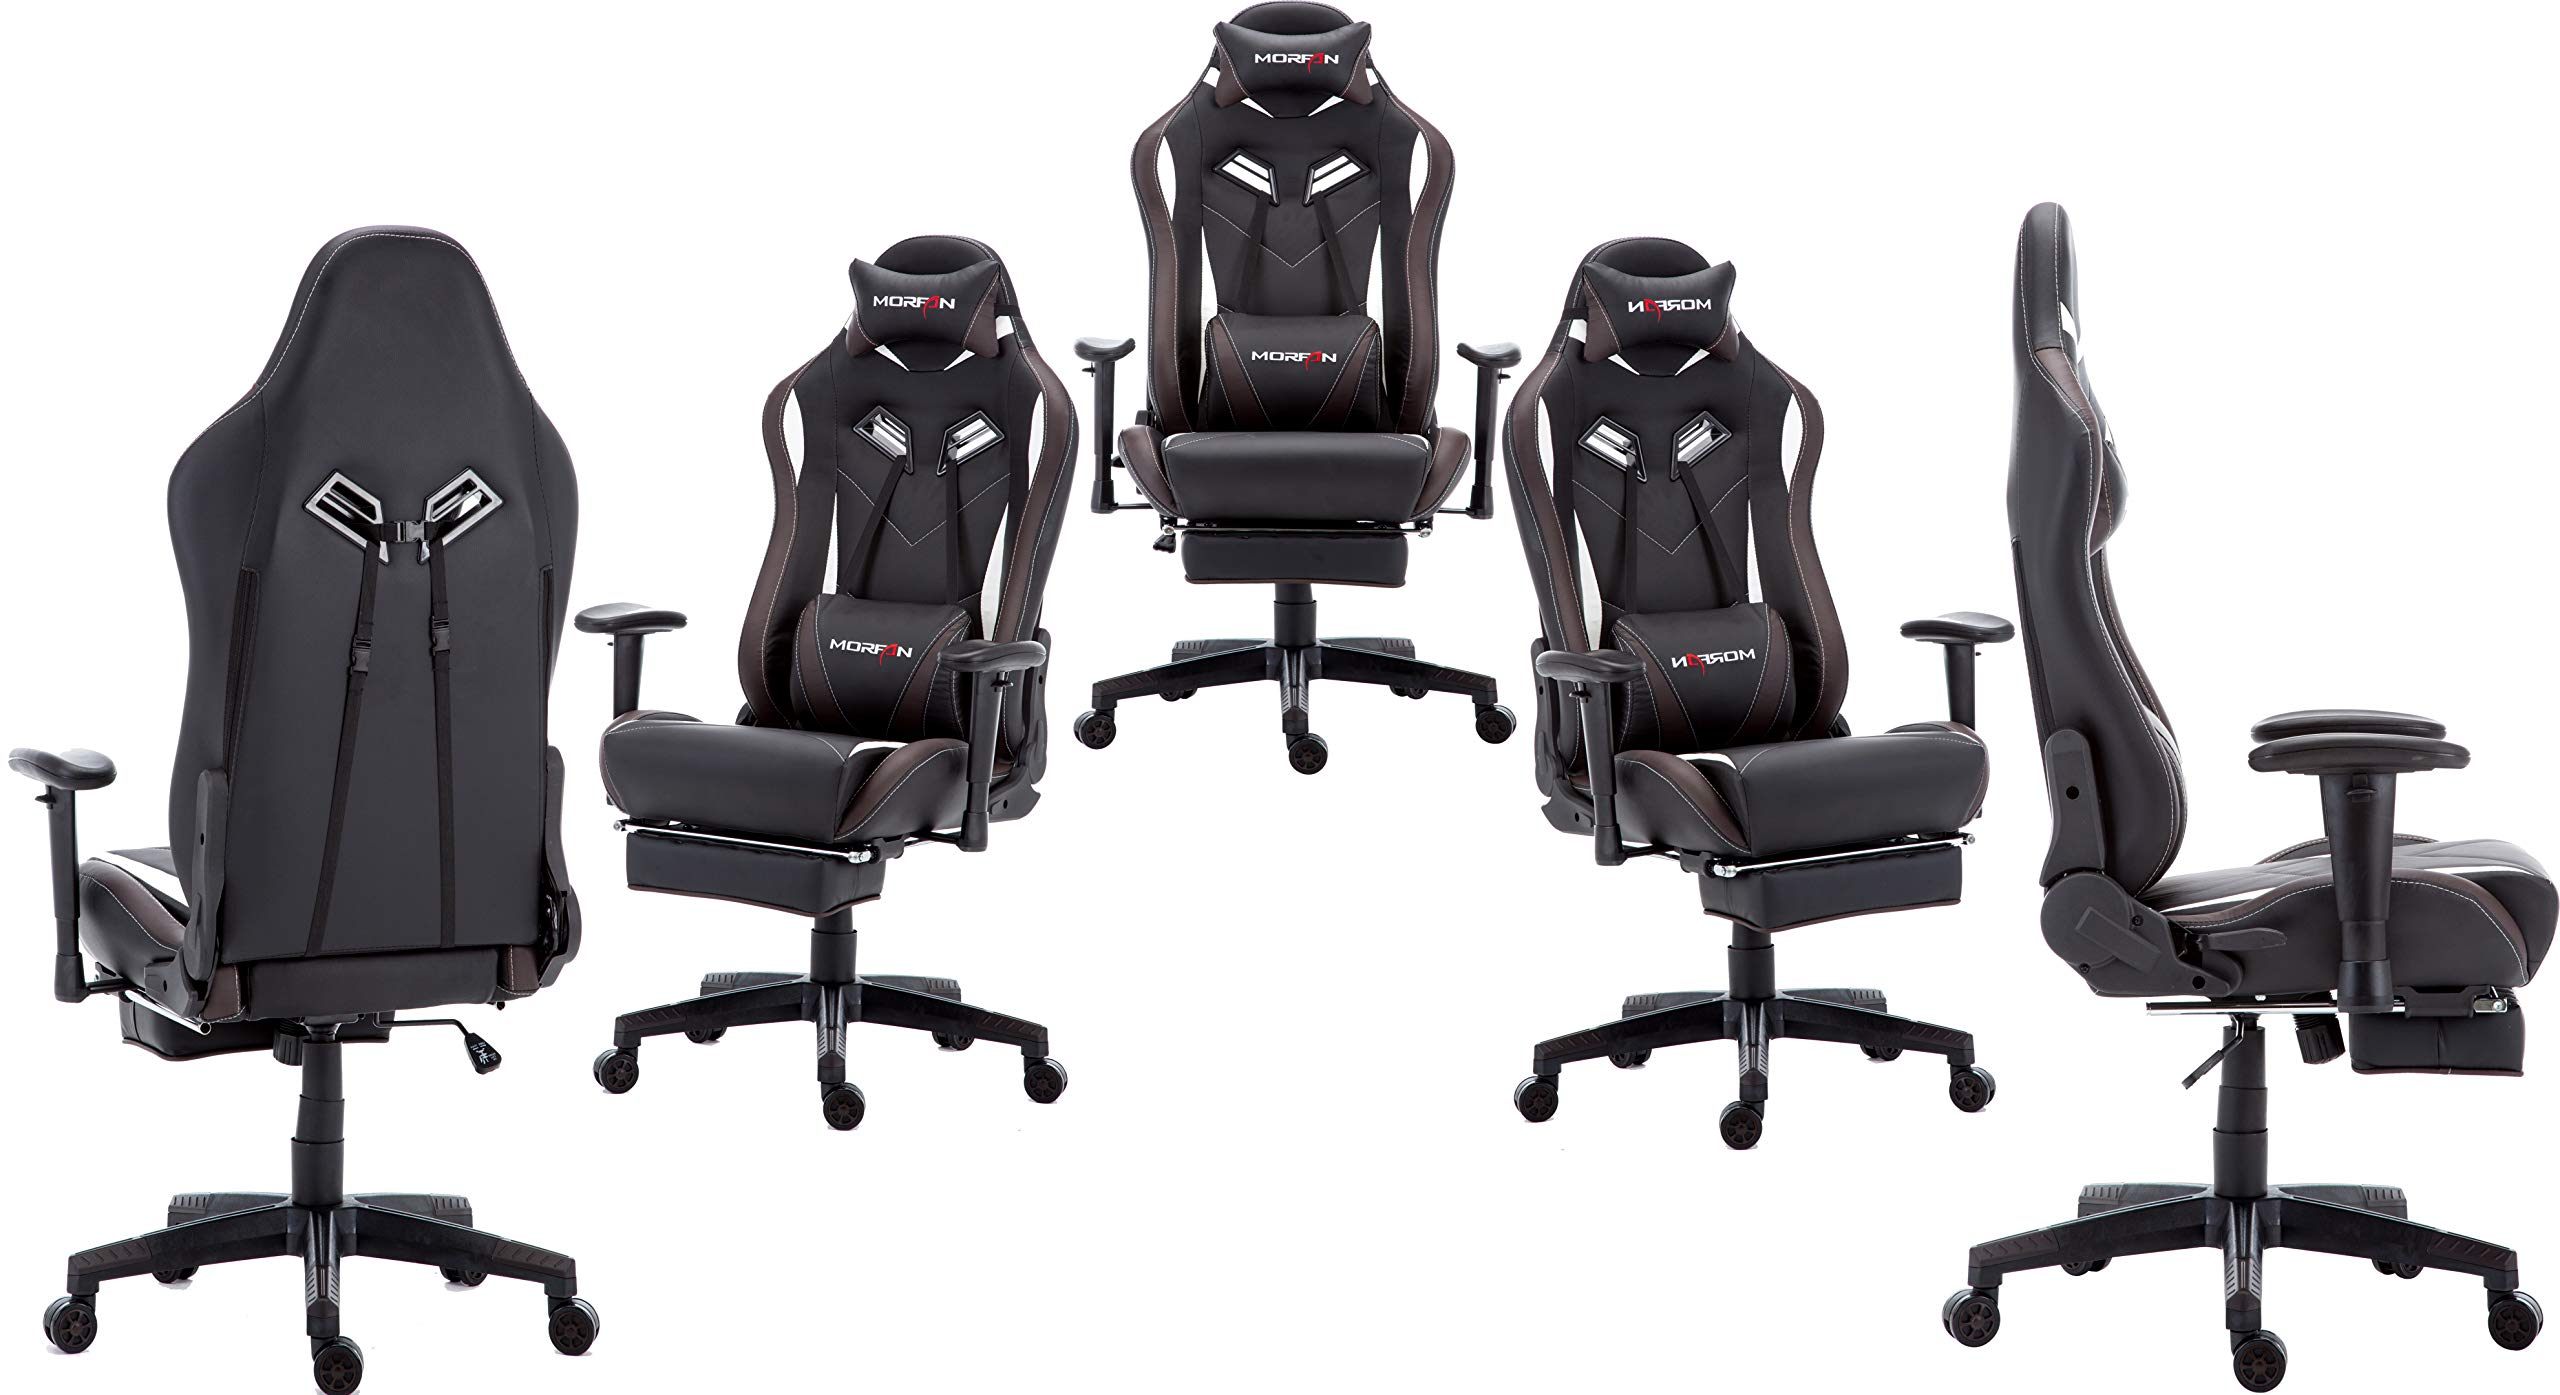 Morfan Gaming Chair Large Size Massage Function Ergonomic Racing Style PC Computer Office Chair with Retractable Footrest & Adjustable Lumbar and Headrest Pillows (Black/Brown) by MORFAN (Image #2)